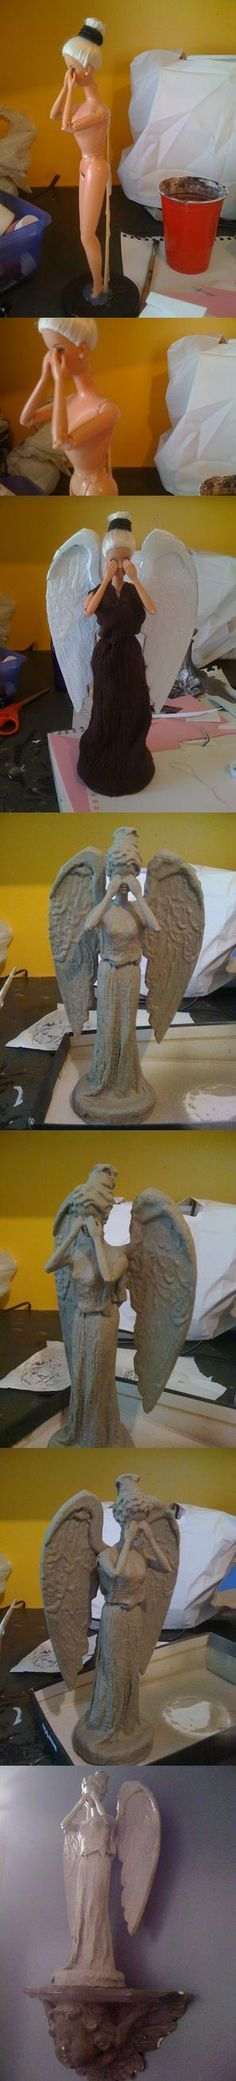 How to Make a Weeping Angel Barbie (link in comments) , this is so cool but I don't think I could hang this on my wall. I already have a creepy doll phobia....